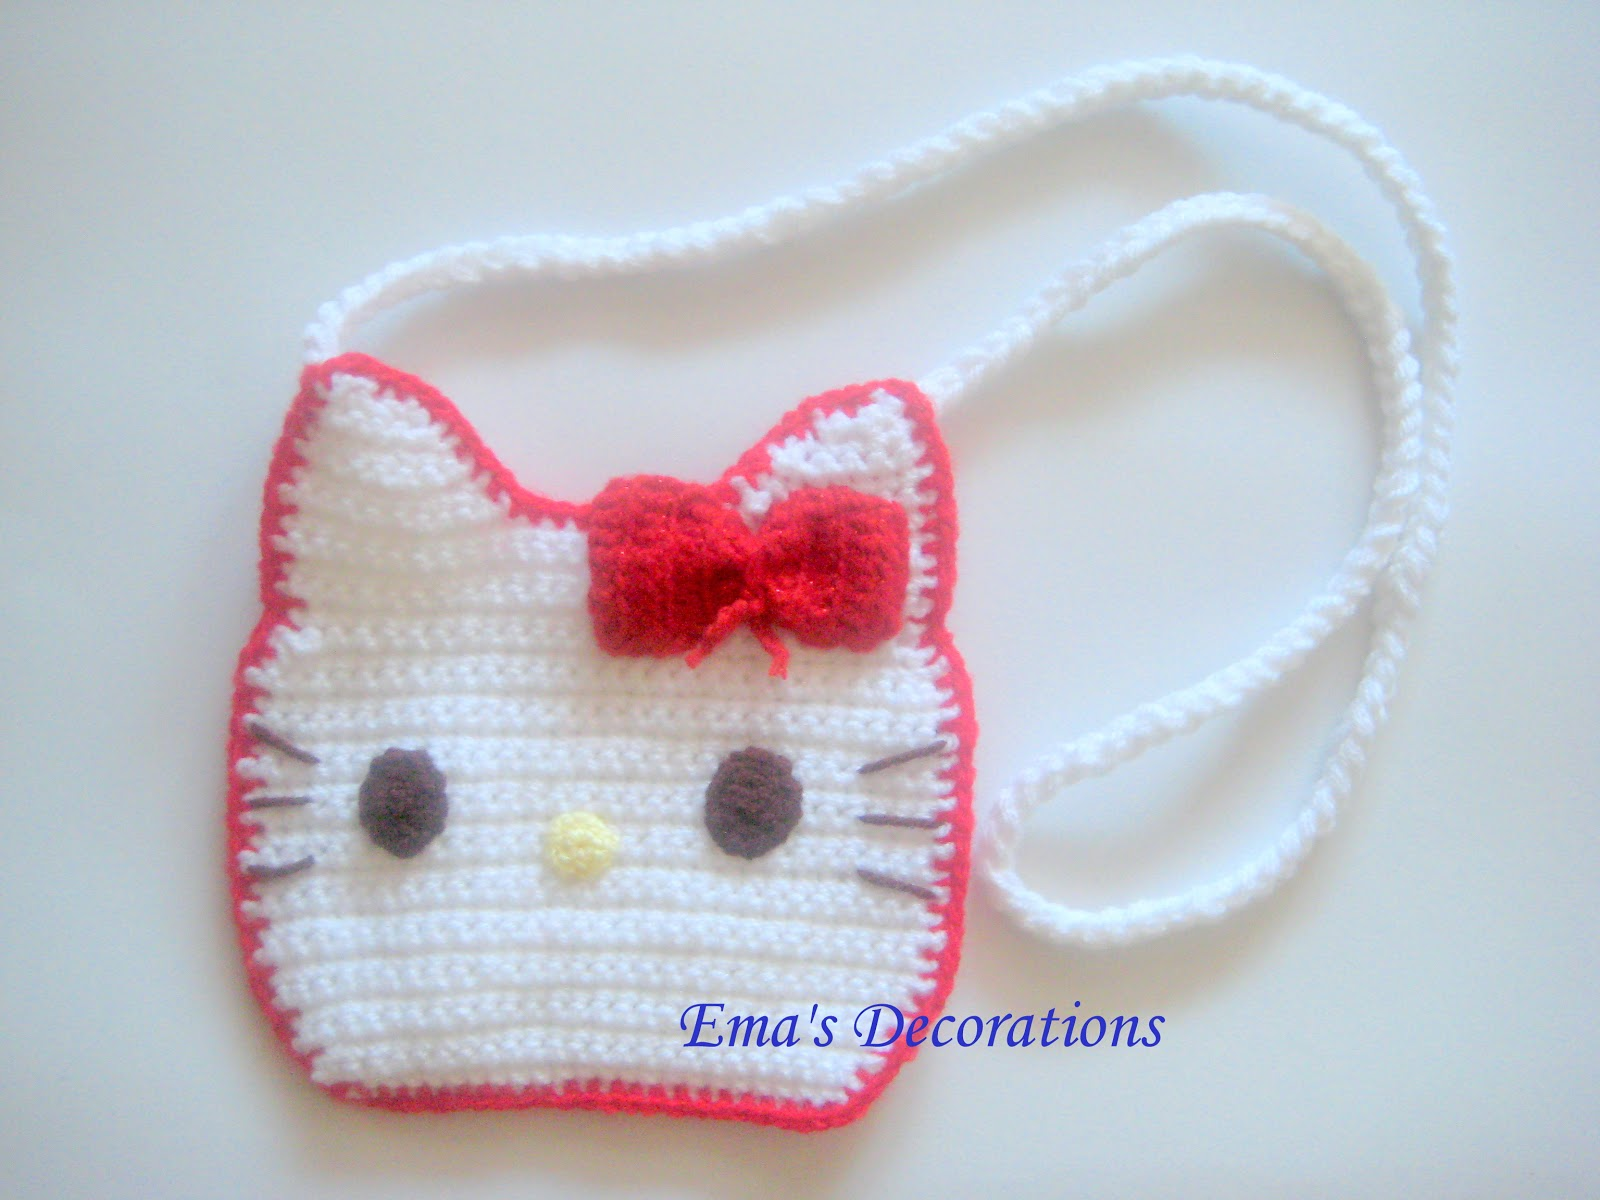 Crochet Purse Patterns Hello Kitty : Ema Decorations: Crochet Hello Kitty Purse - my pattern